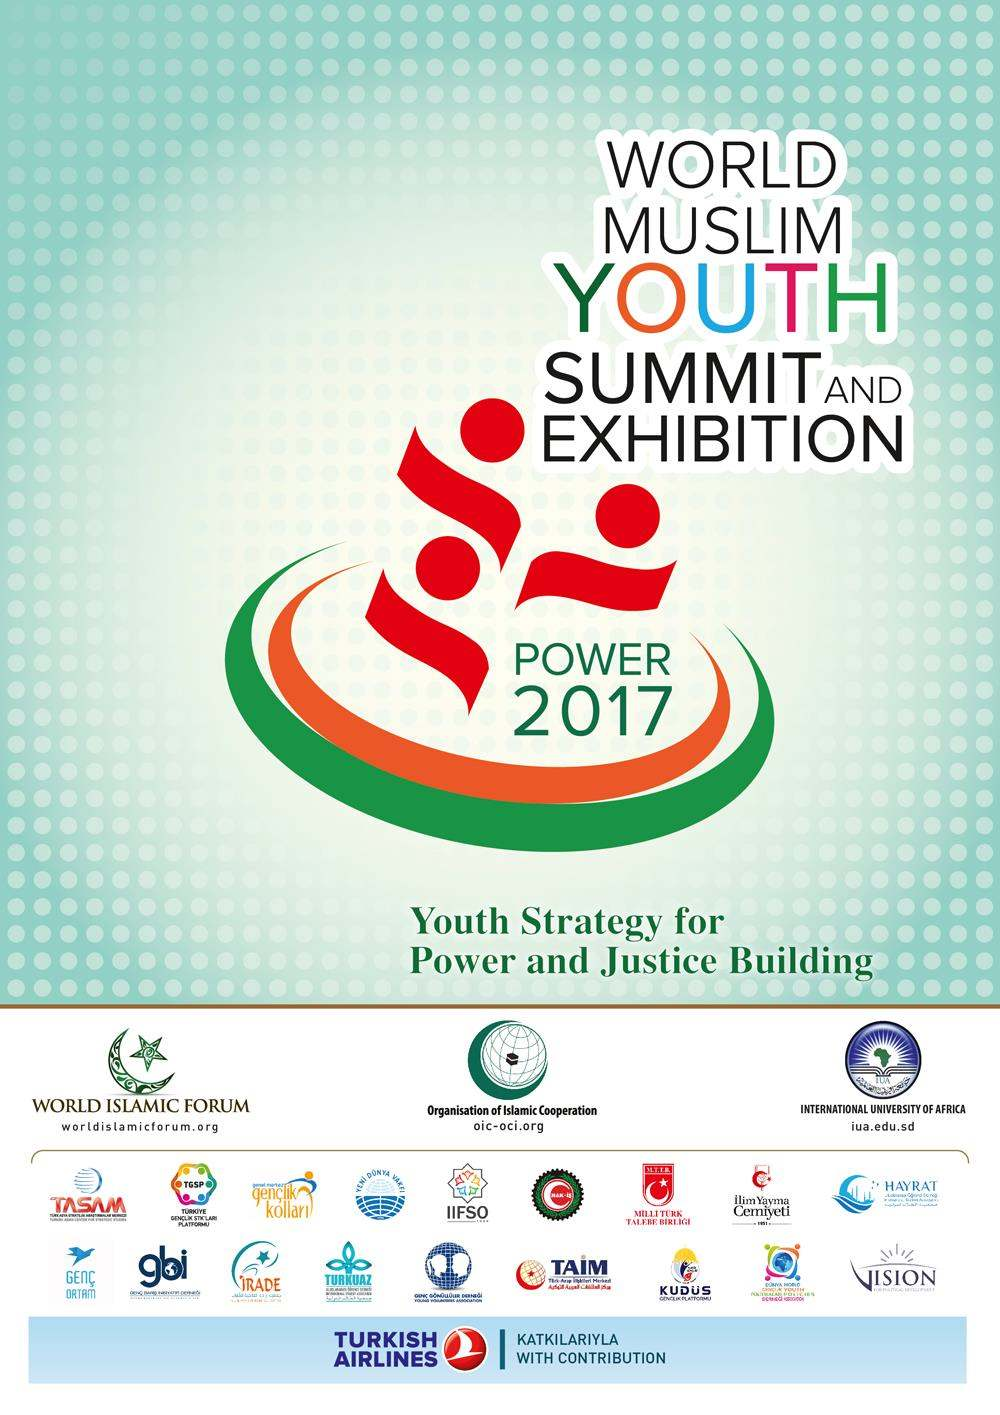 World Muslim Youth Summit and Exhibition | POWER 2017